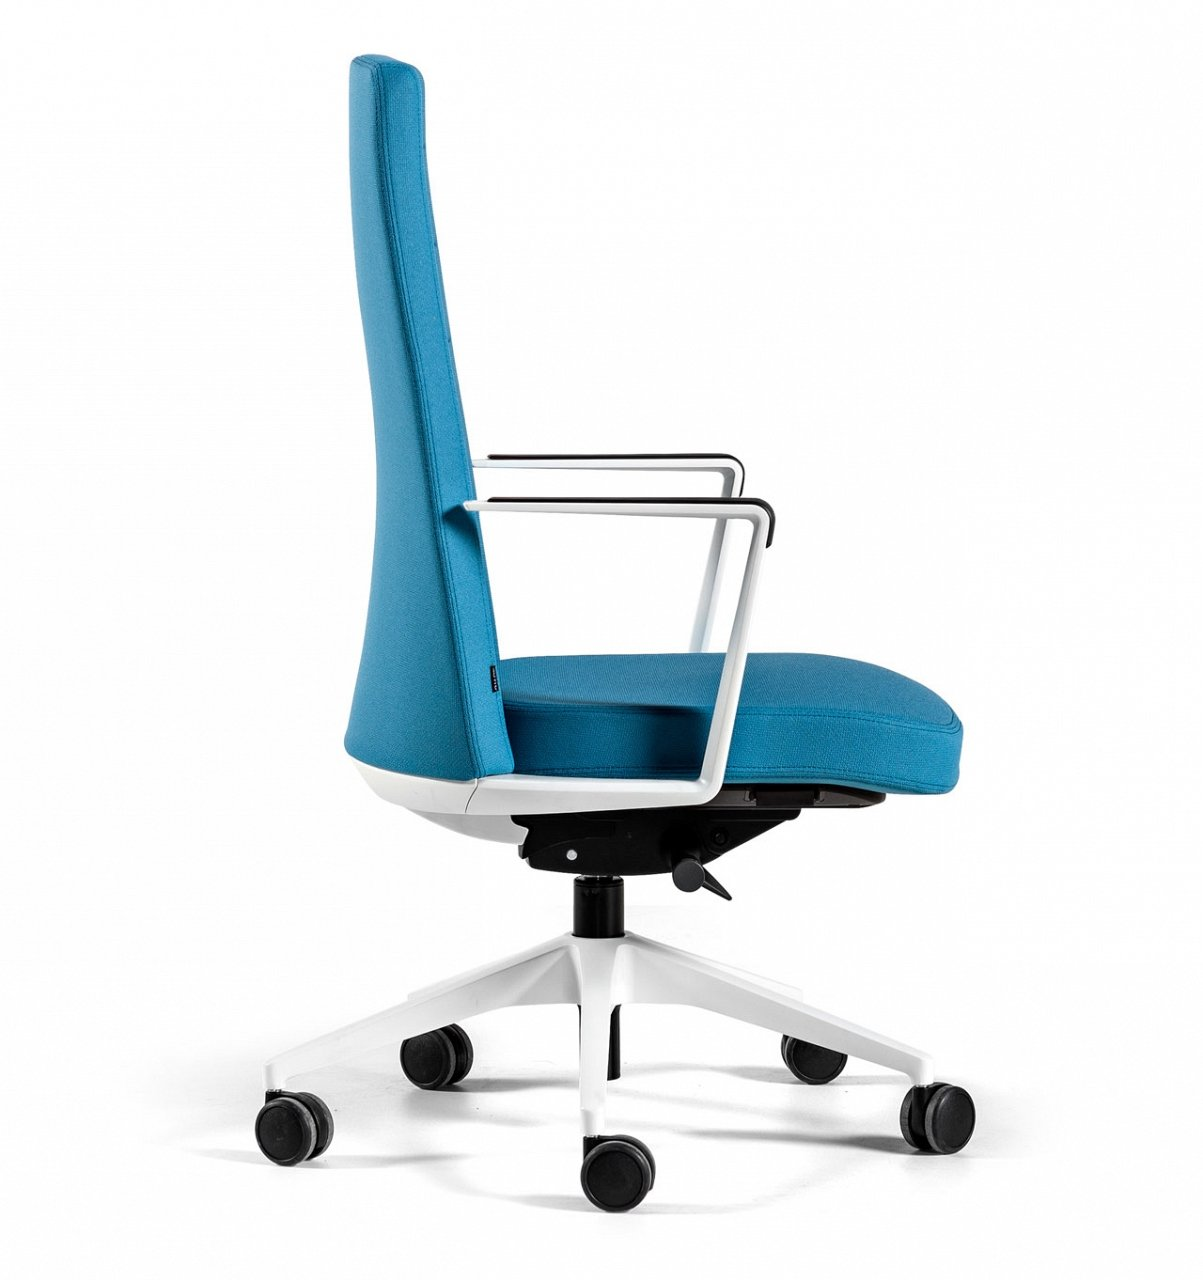 Cron Chair office from Actiu